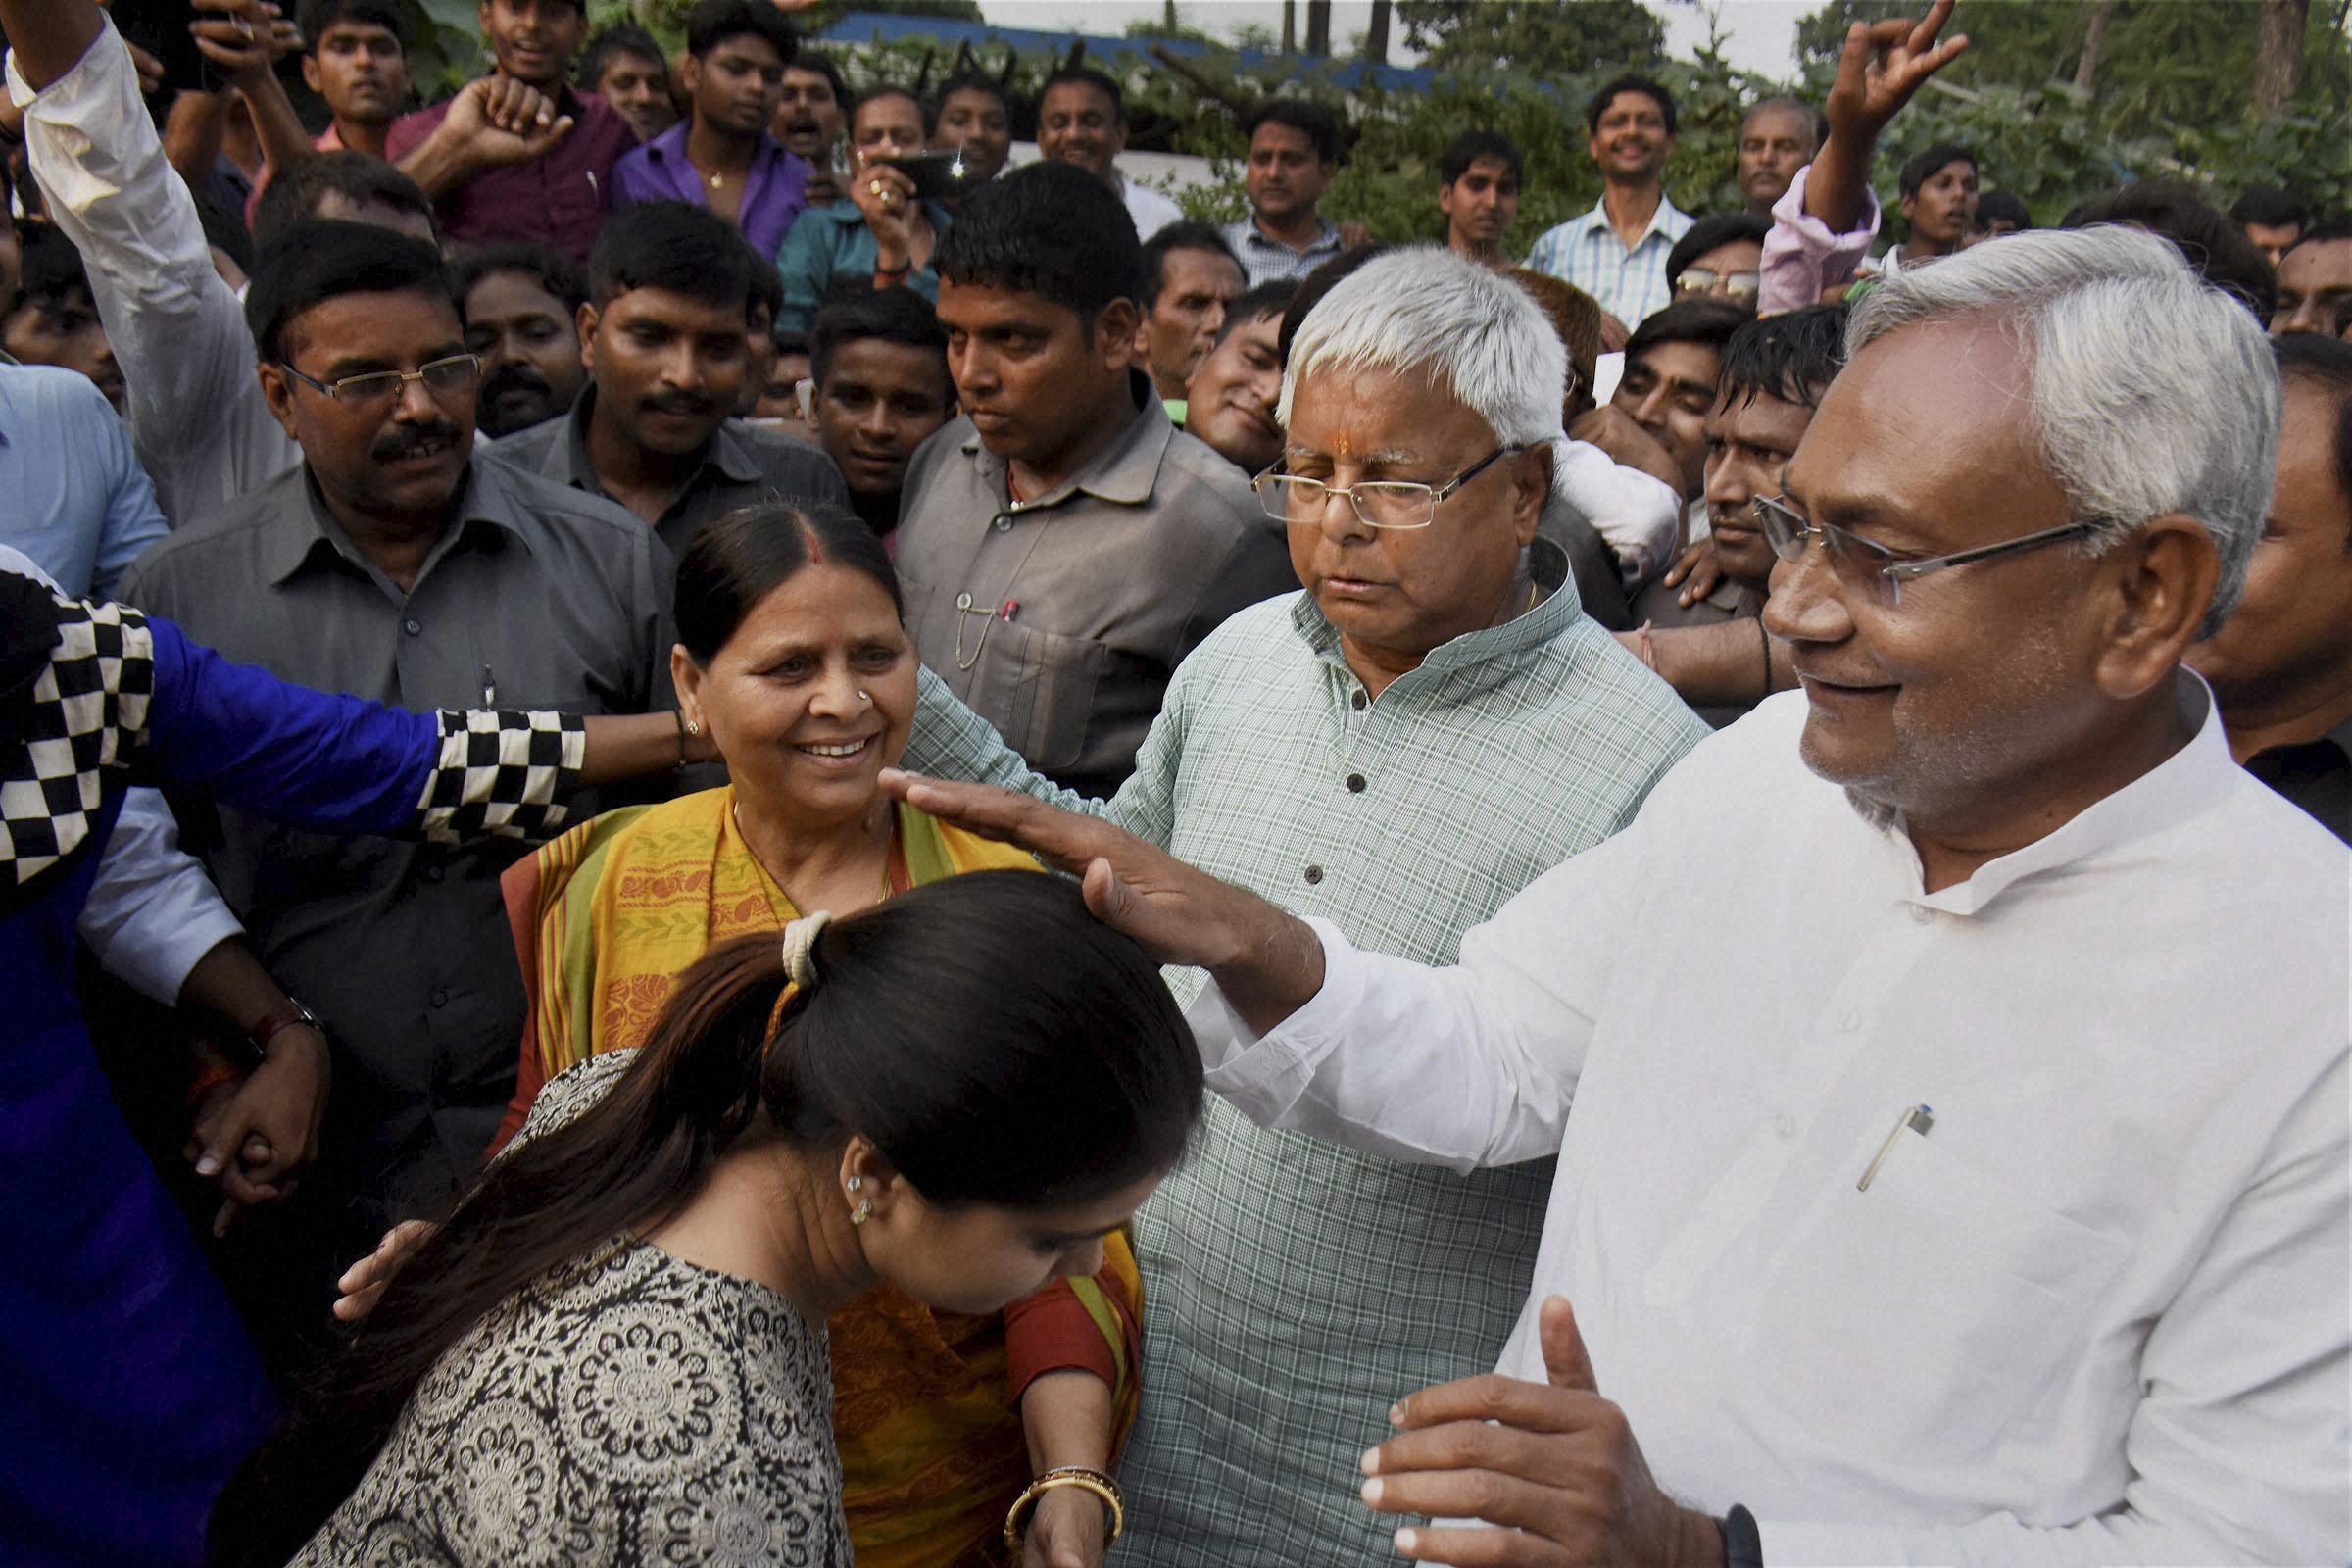 Bihar chief minister Nitish Kumar blesses a daughter of RJD chief Lalu Prasad and Rabri Devi after the Mahagathbandhan's (Grand Alliance) victory in the Bihar assembly elections in Patna. Credit: PTI